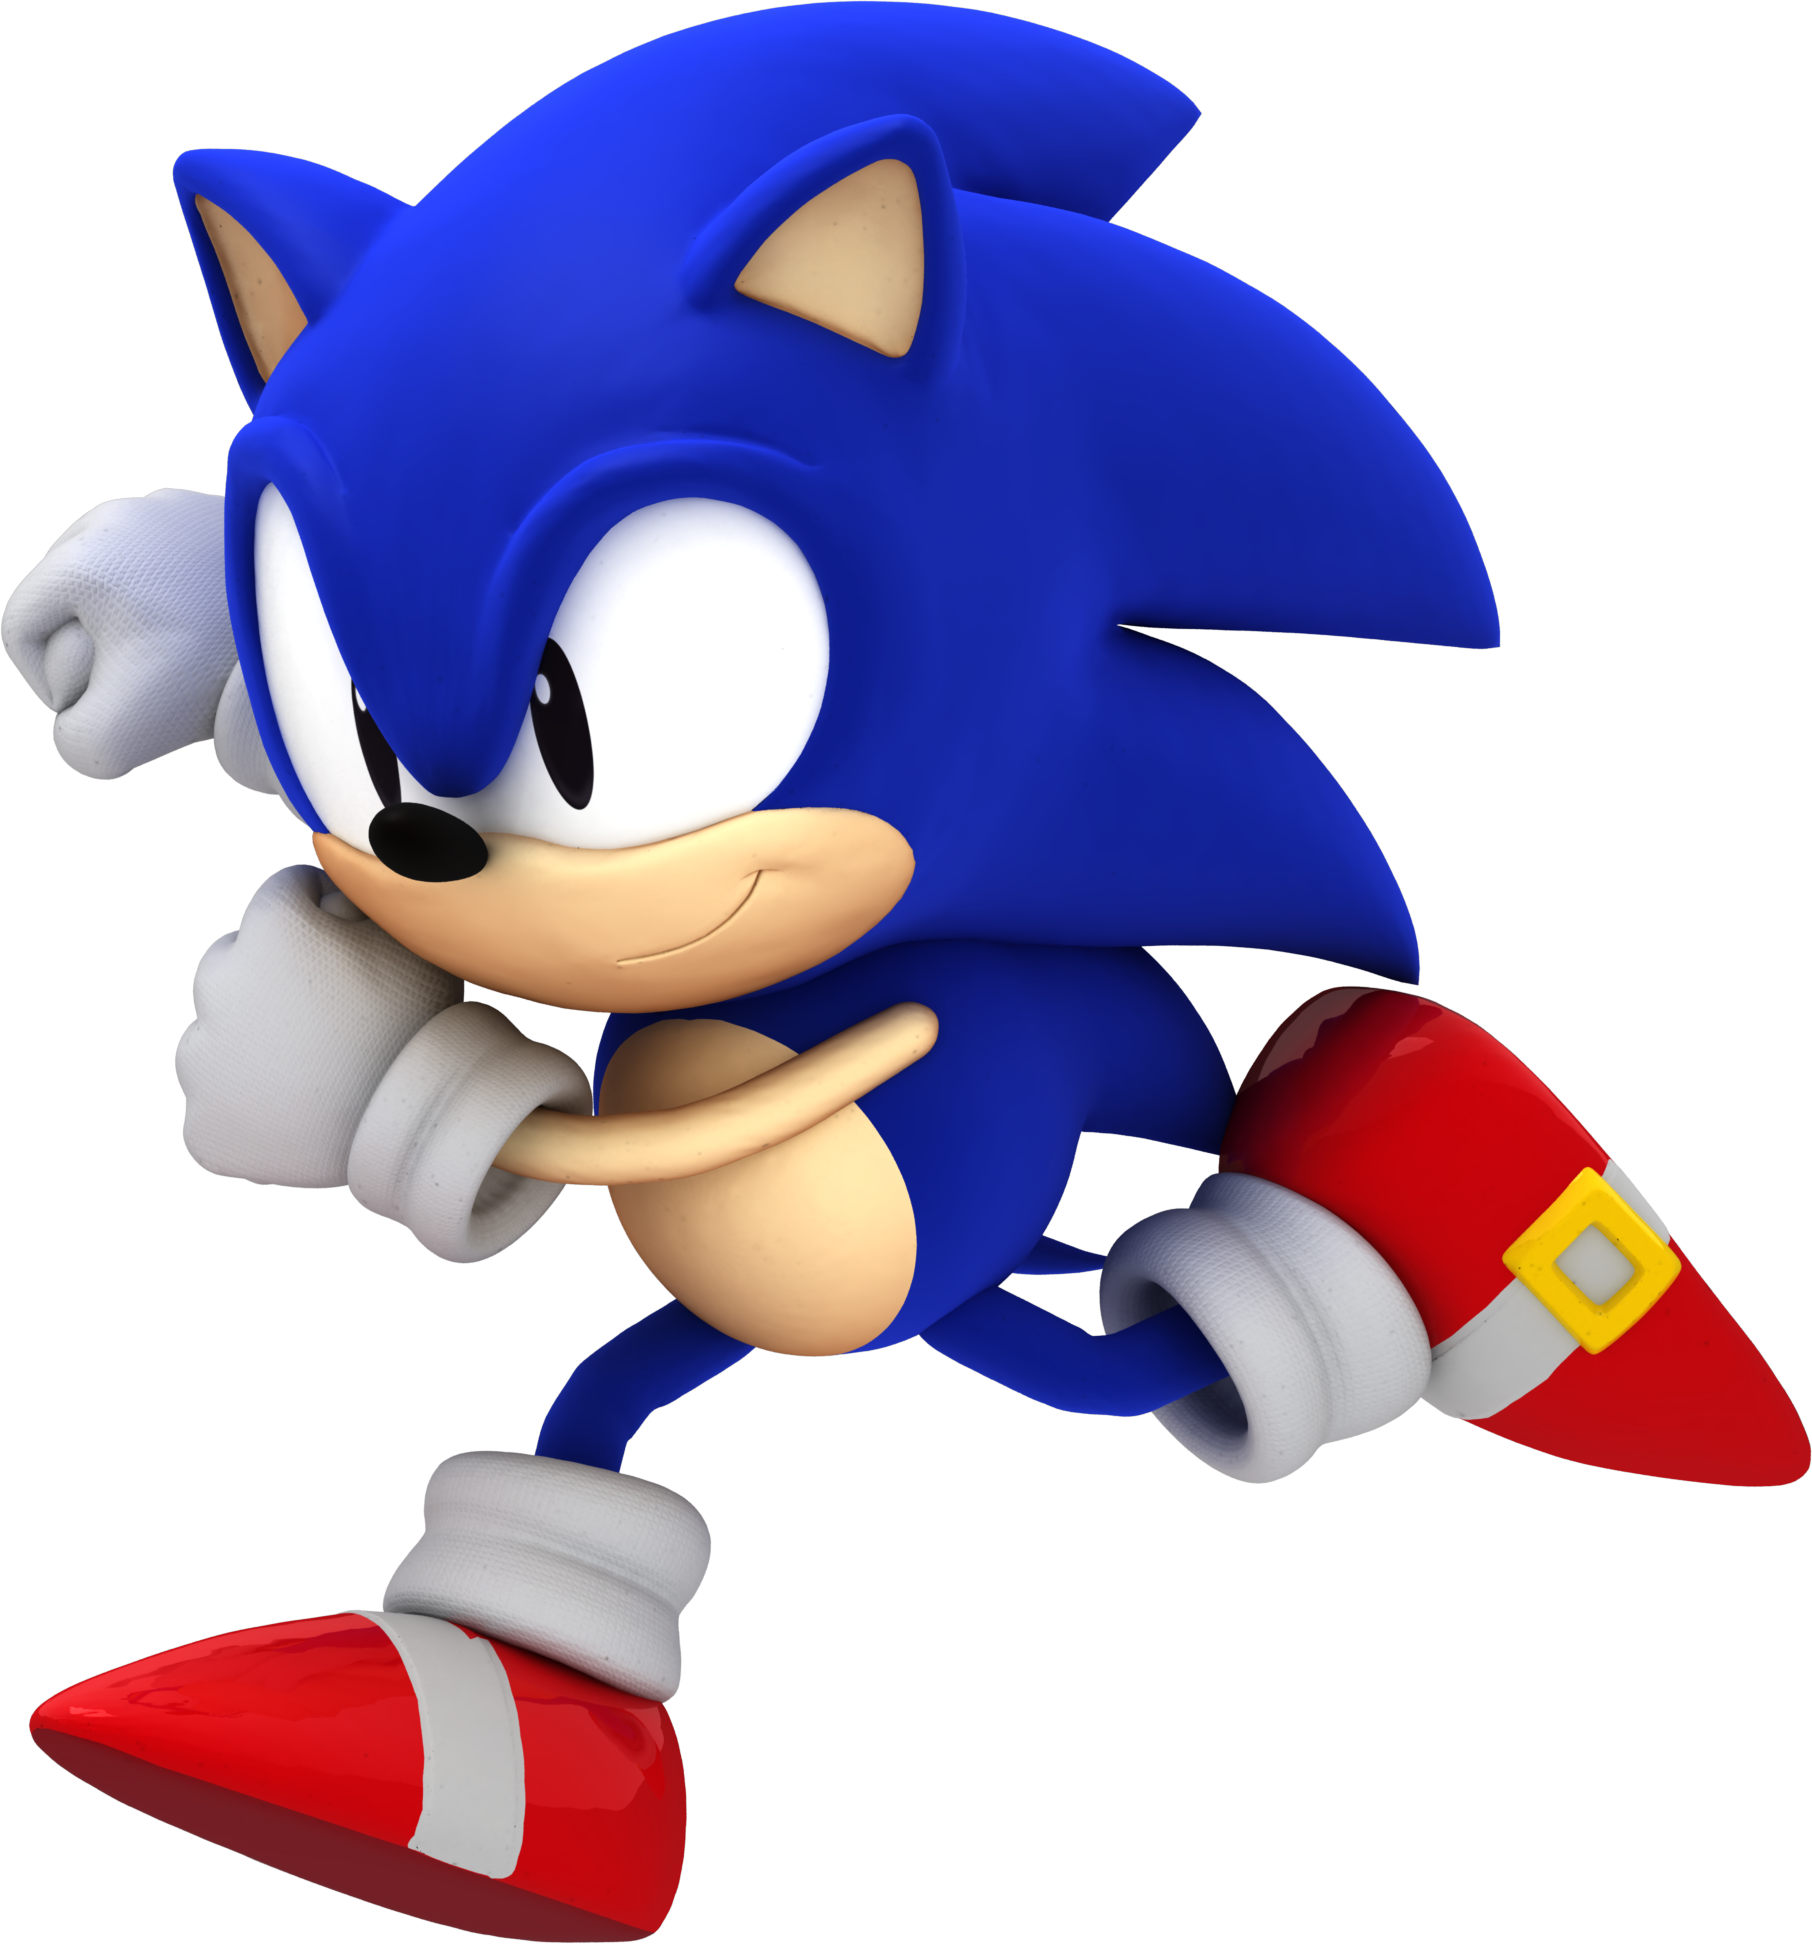 Another Classic Sonic Render 1.1 By Alsyouri2001 On DeviantArt